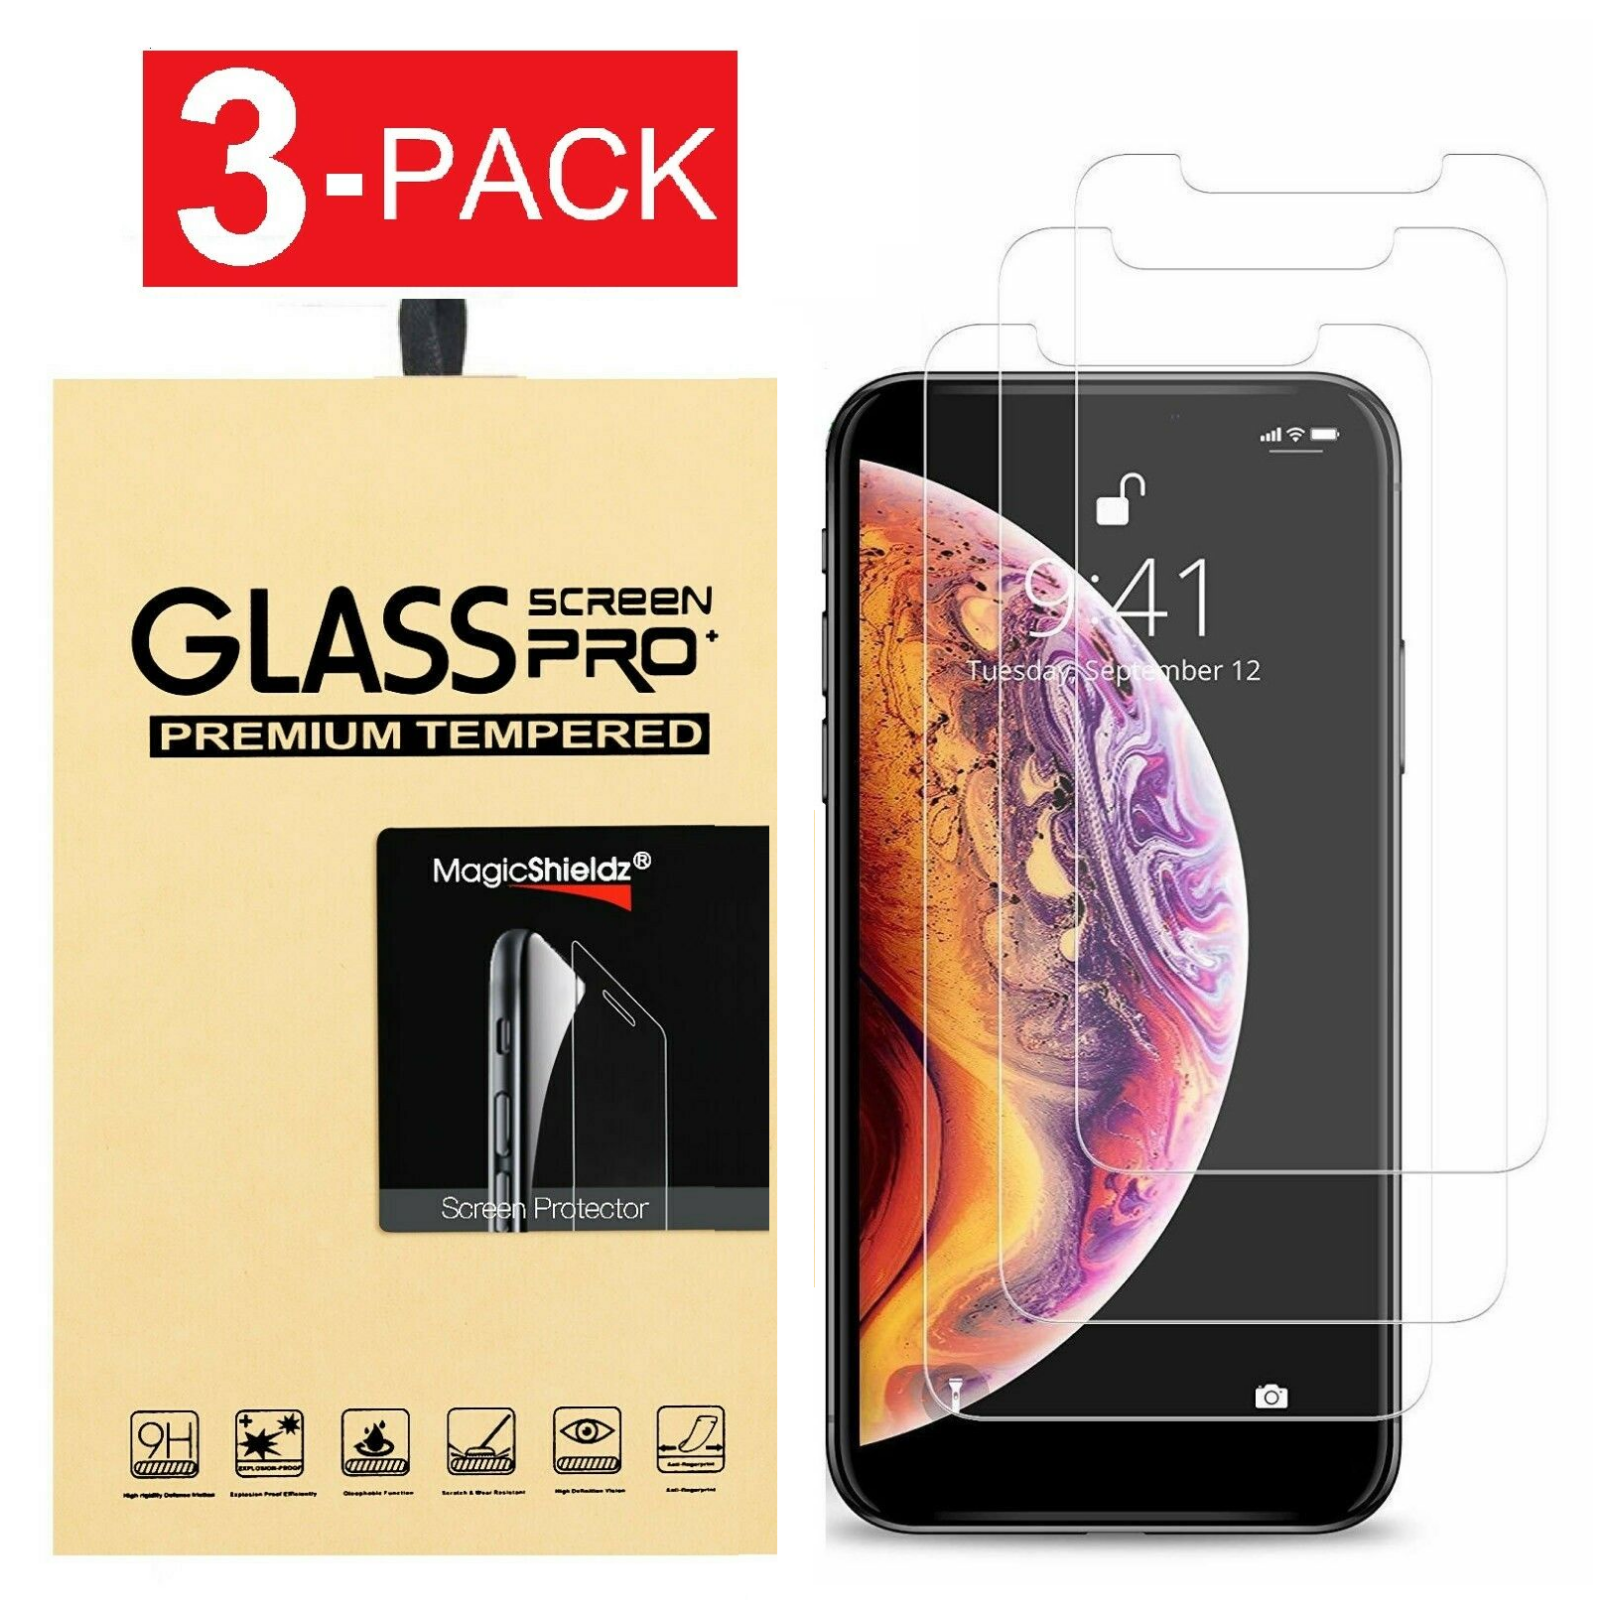 Screen Protector Tempered Glass For iPhone SE 5 6 7 8 Plus X